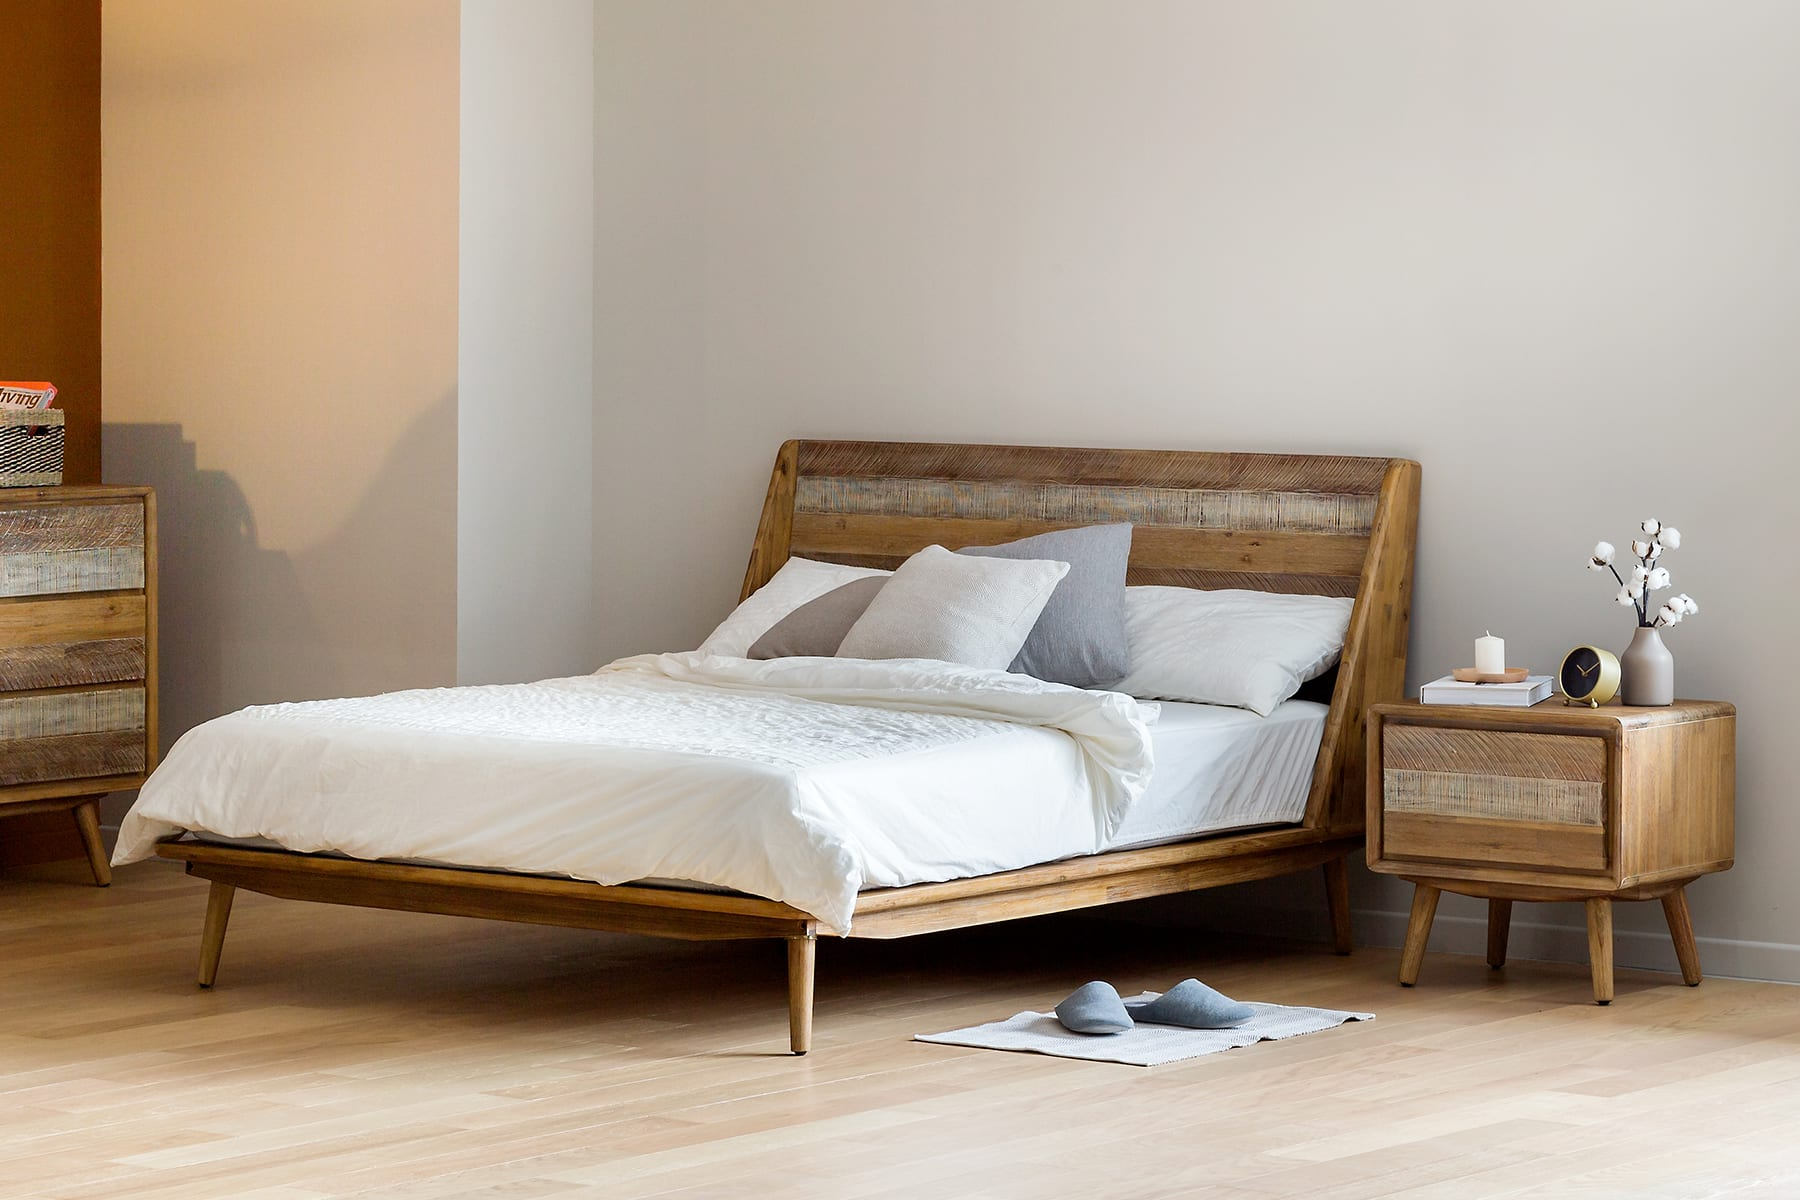 wooden bed frame, with bedside table, sideboard and table lamp